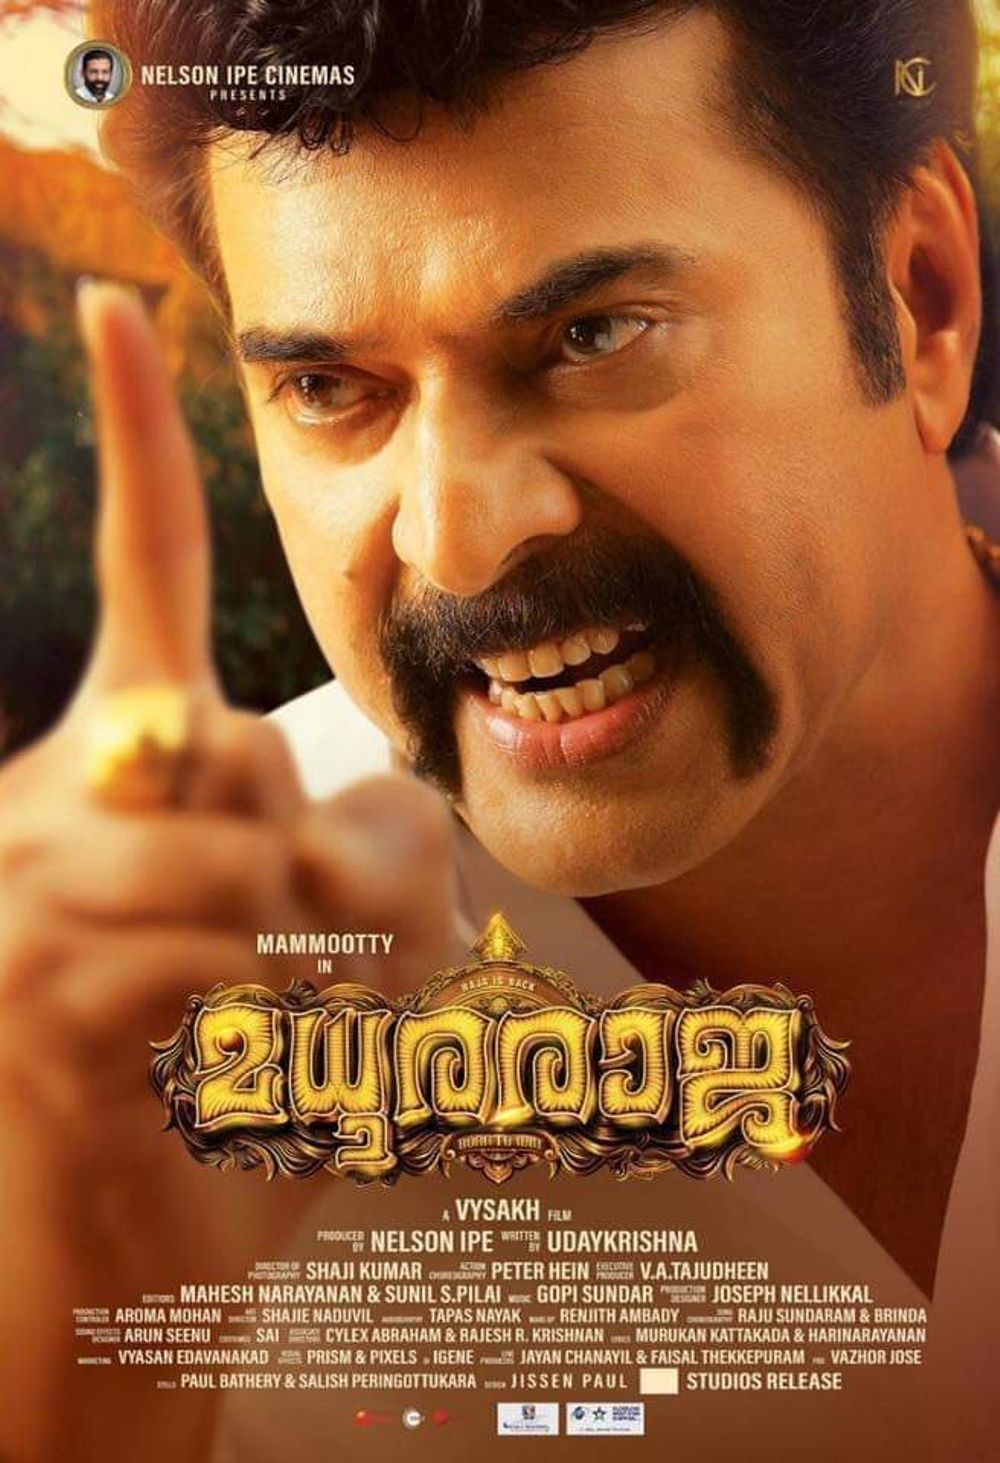 Madhura Raja Movie Review (2019) - Rating, Cast & Crew With